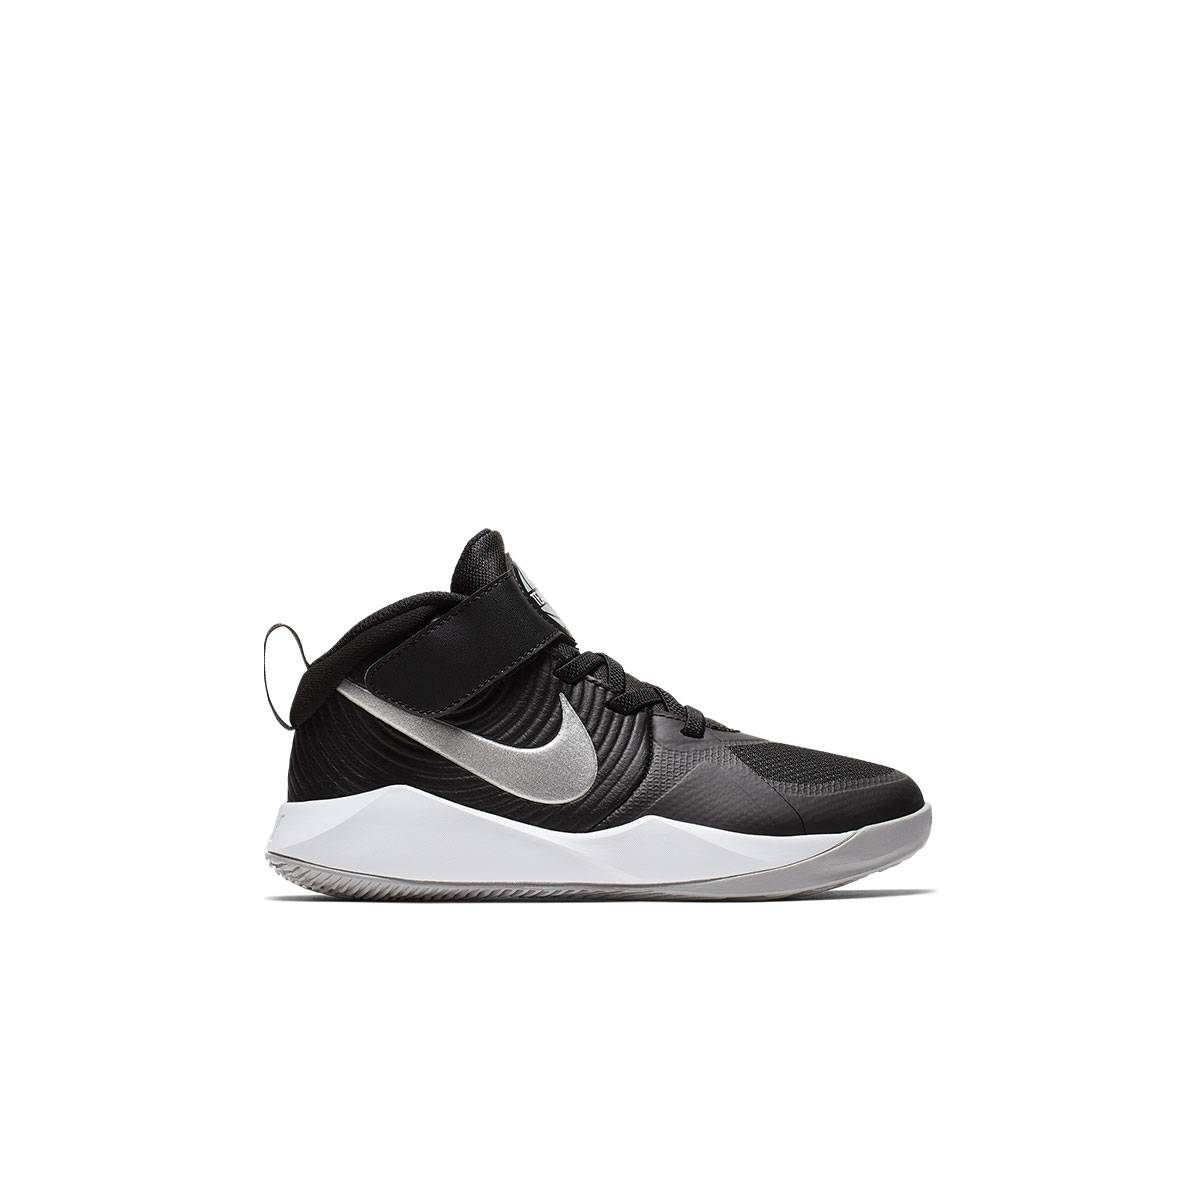 Nike Scarpa JUNIOR Team Hustle D Nere - Bambino